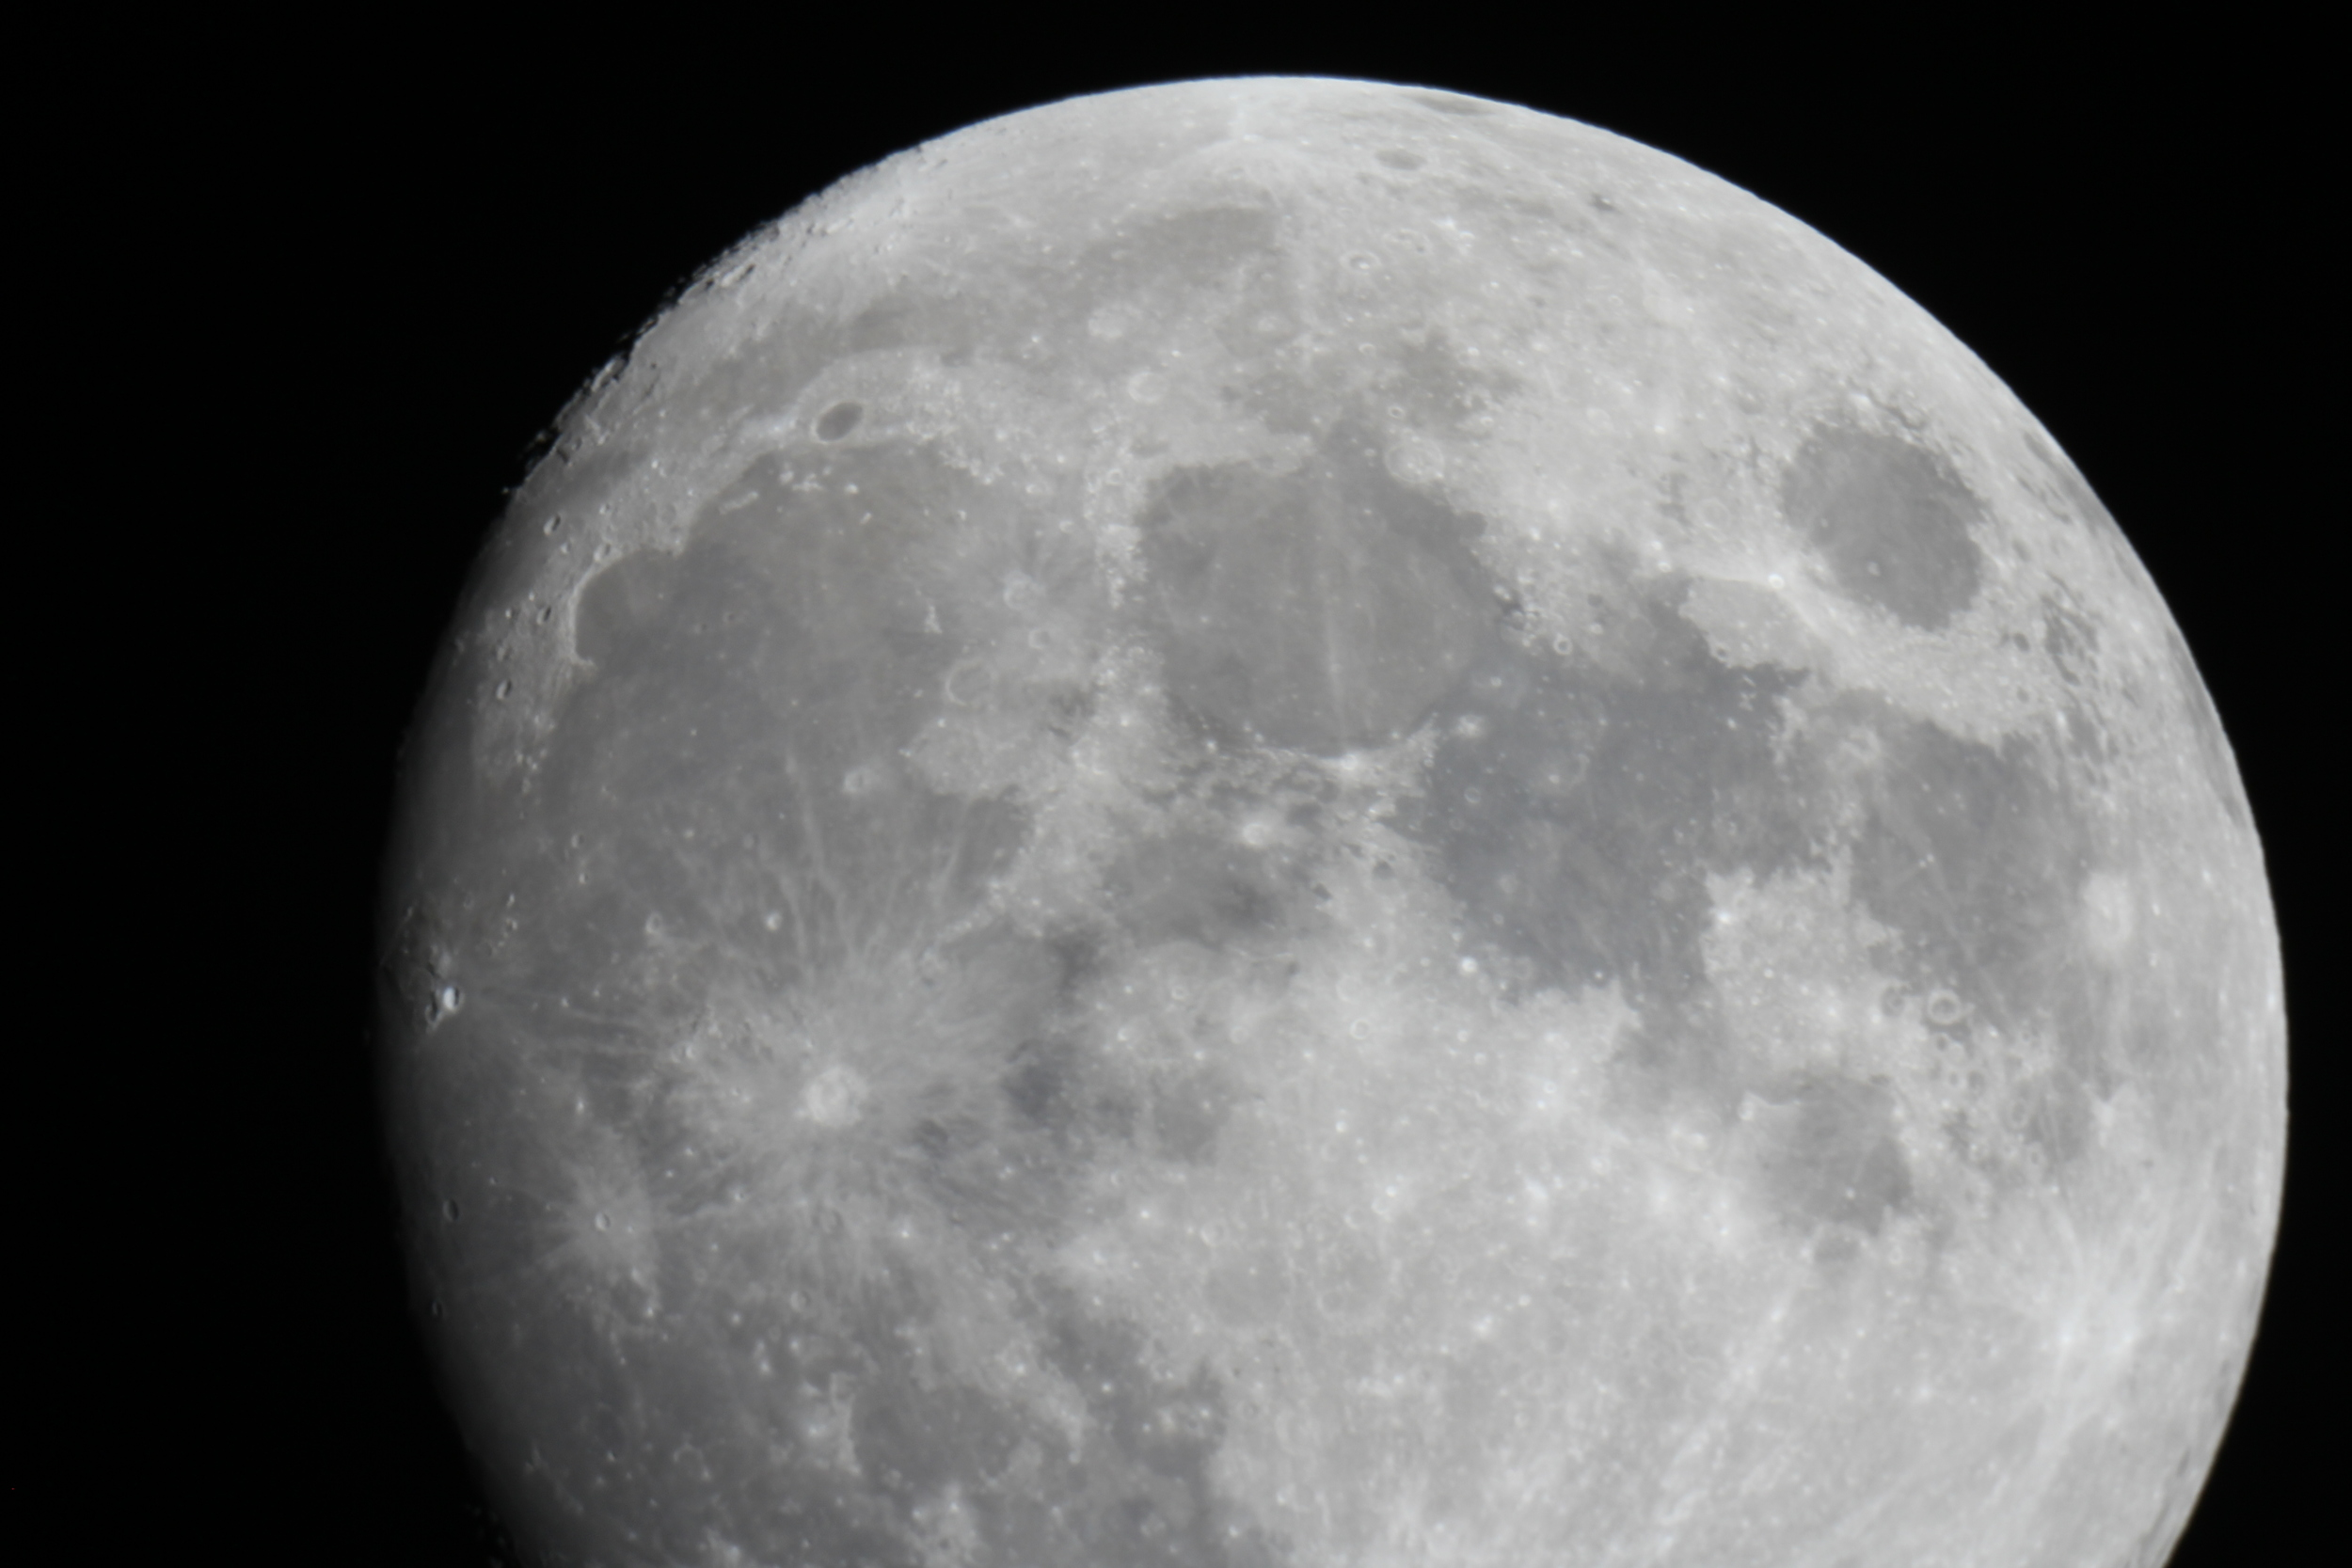 The waxing gibbous Moon will be visible.